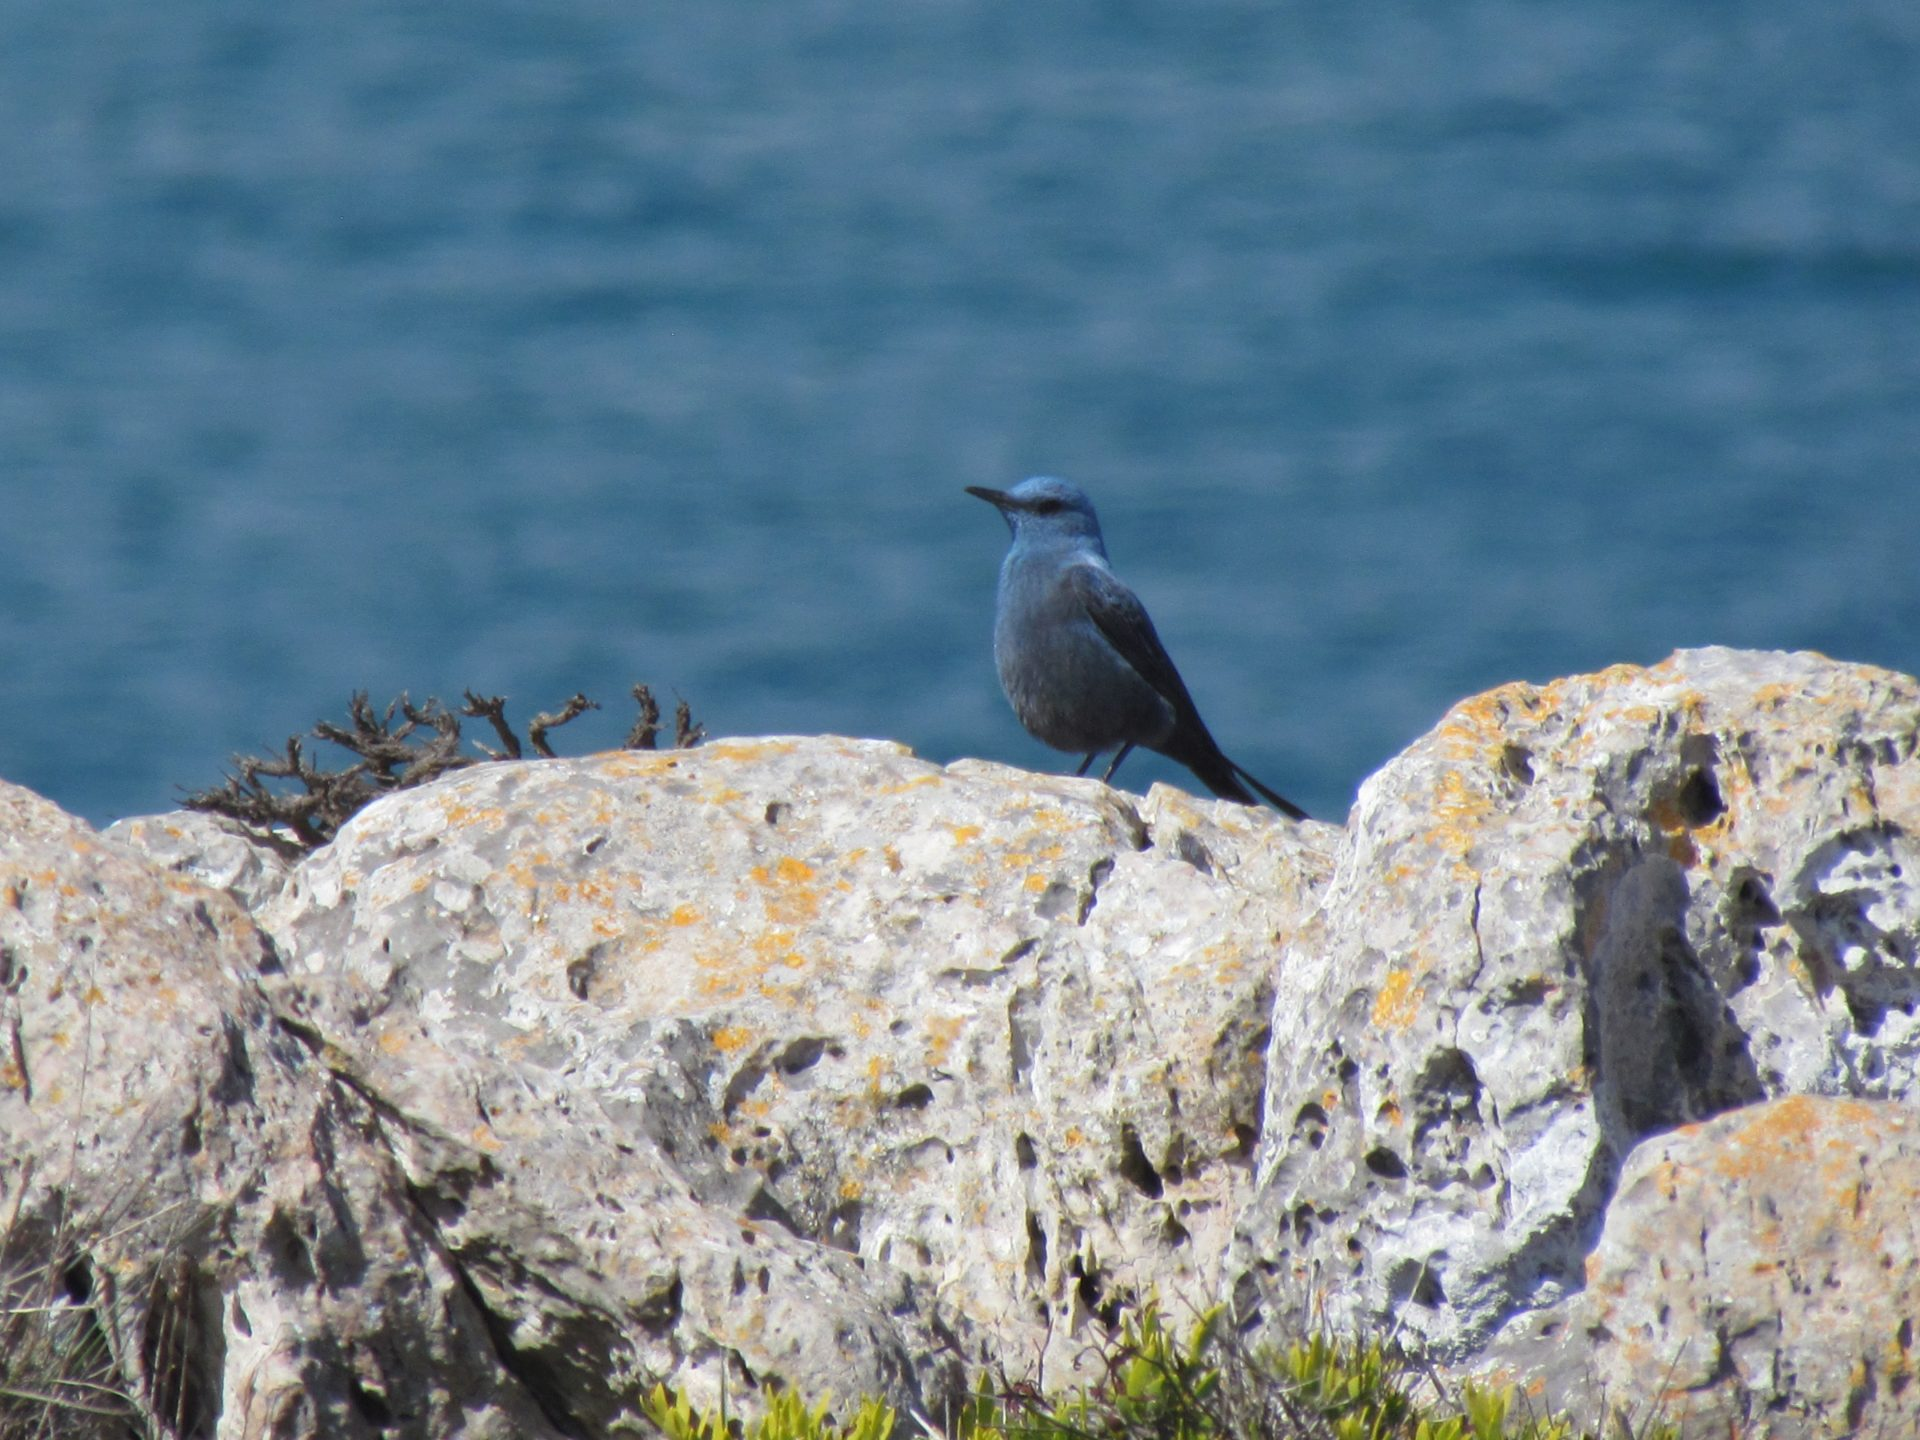 Blue Rock Thrush on a rock